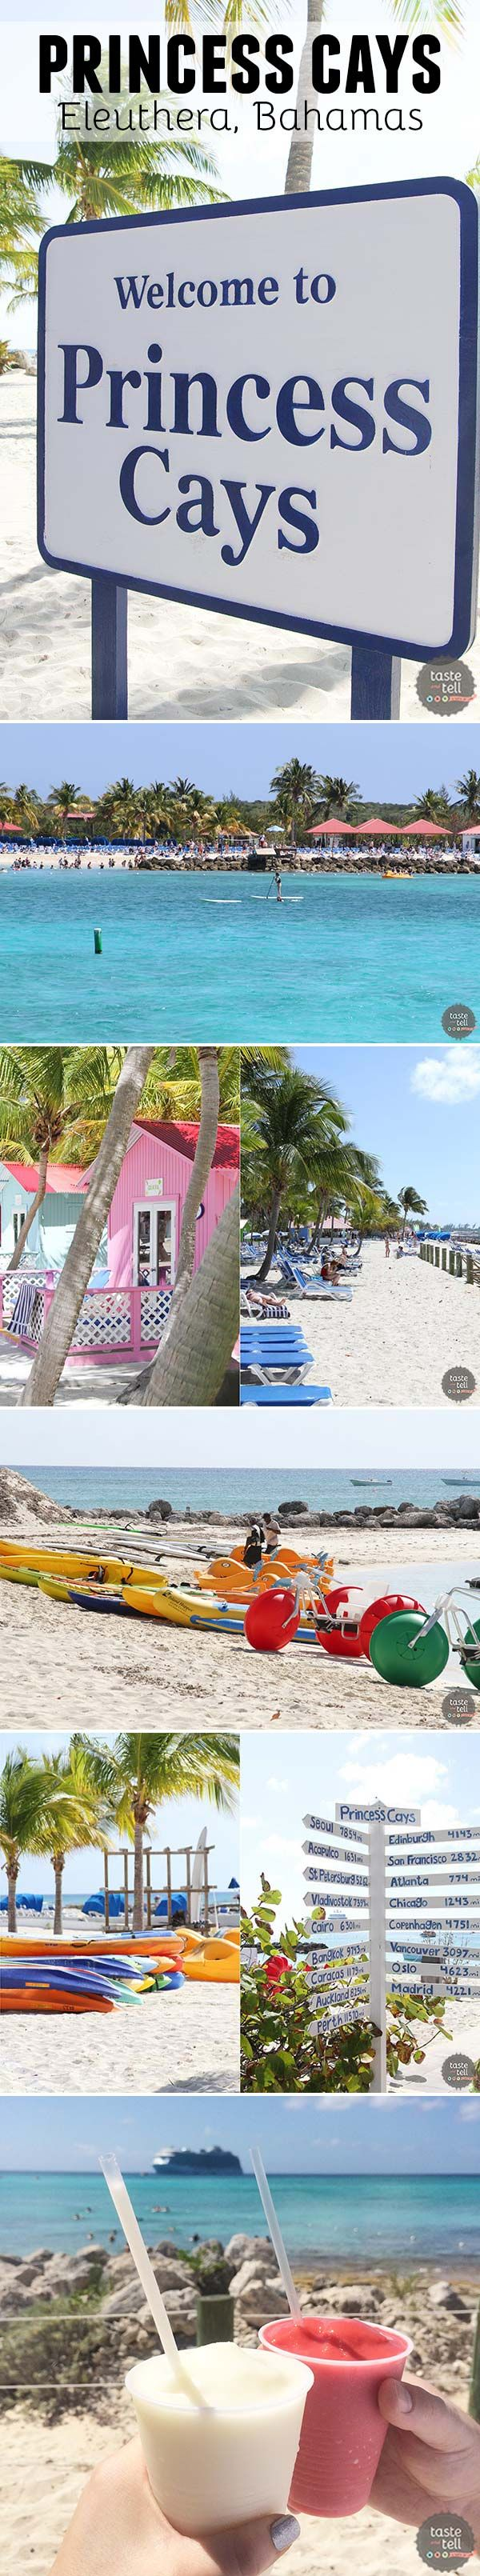 A look at Princess Cays – Princess Cruises exclusive port of call on the island Eleuthera in the Bahamas. Relax on the white sand beaches or participate in a variety of water sports.